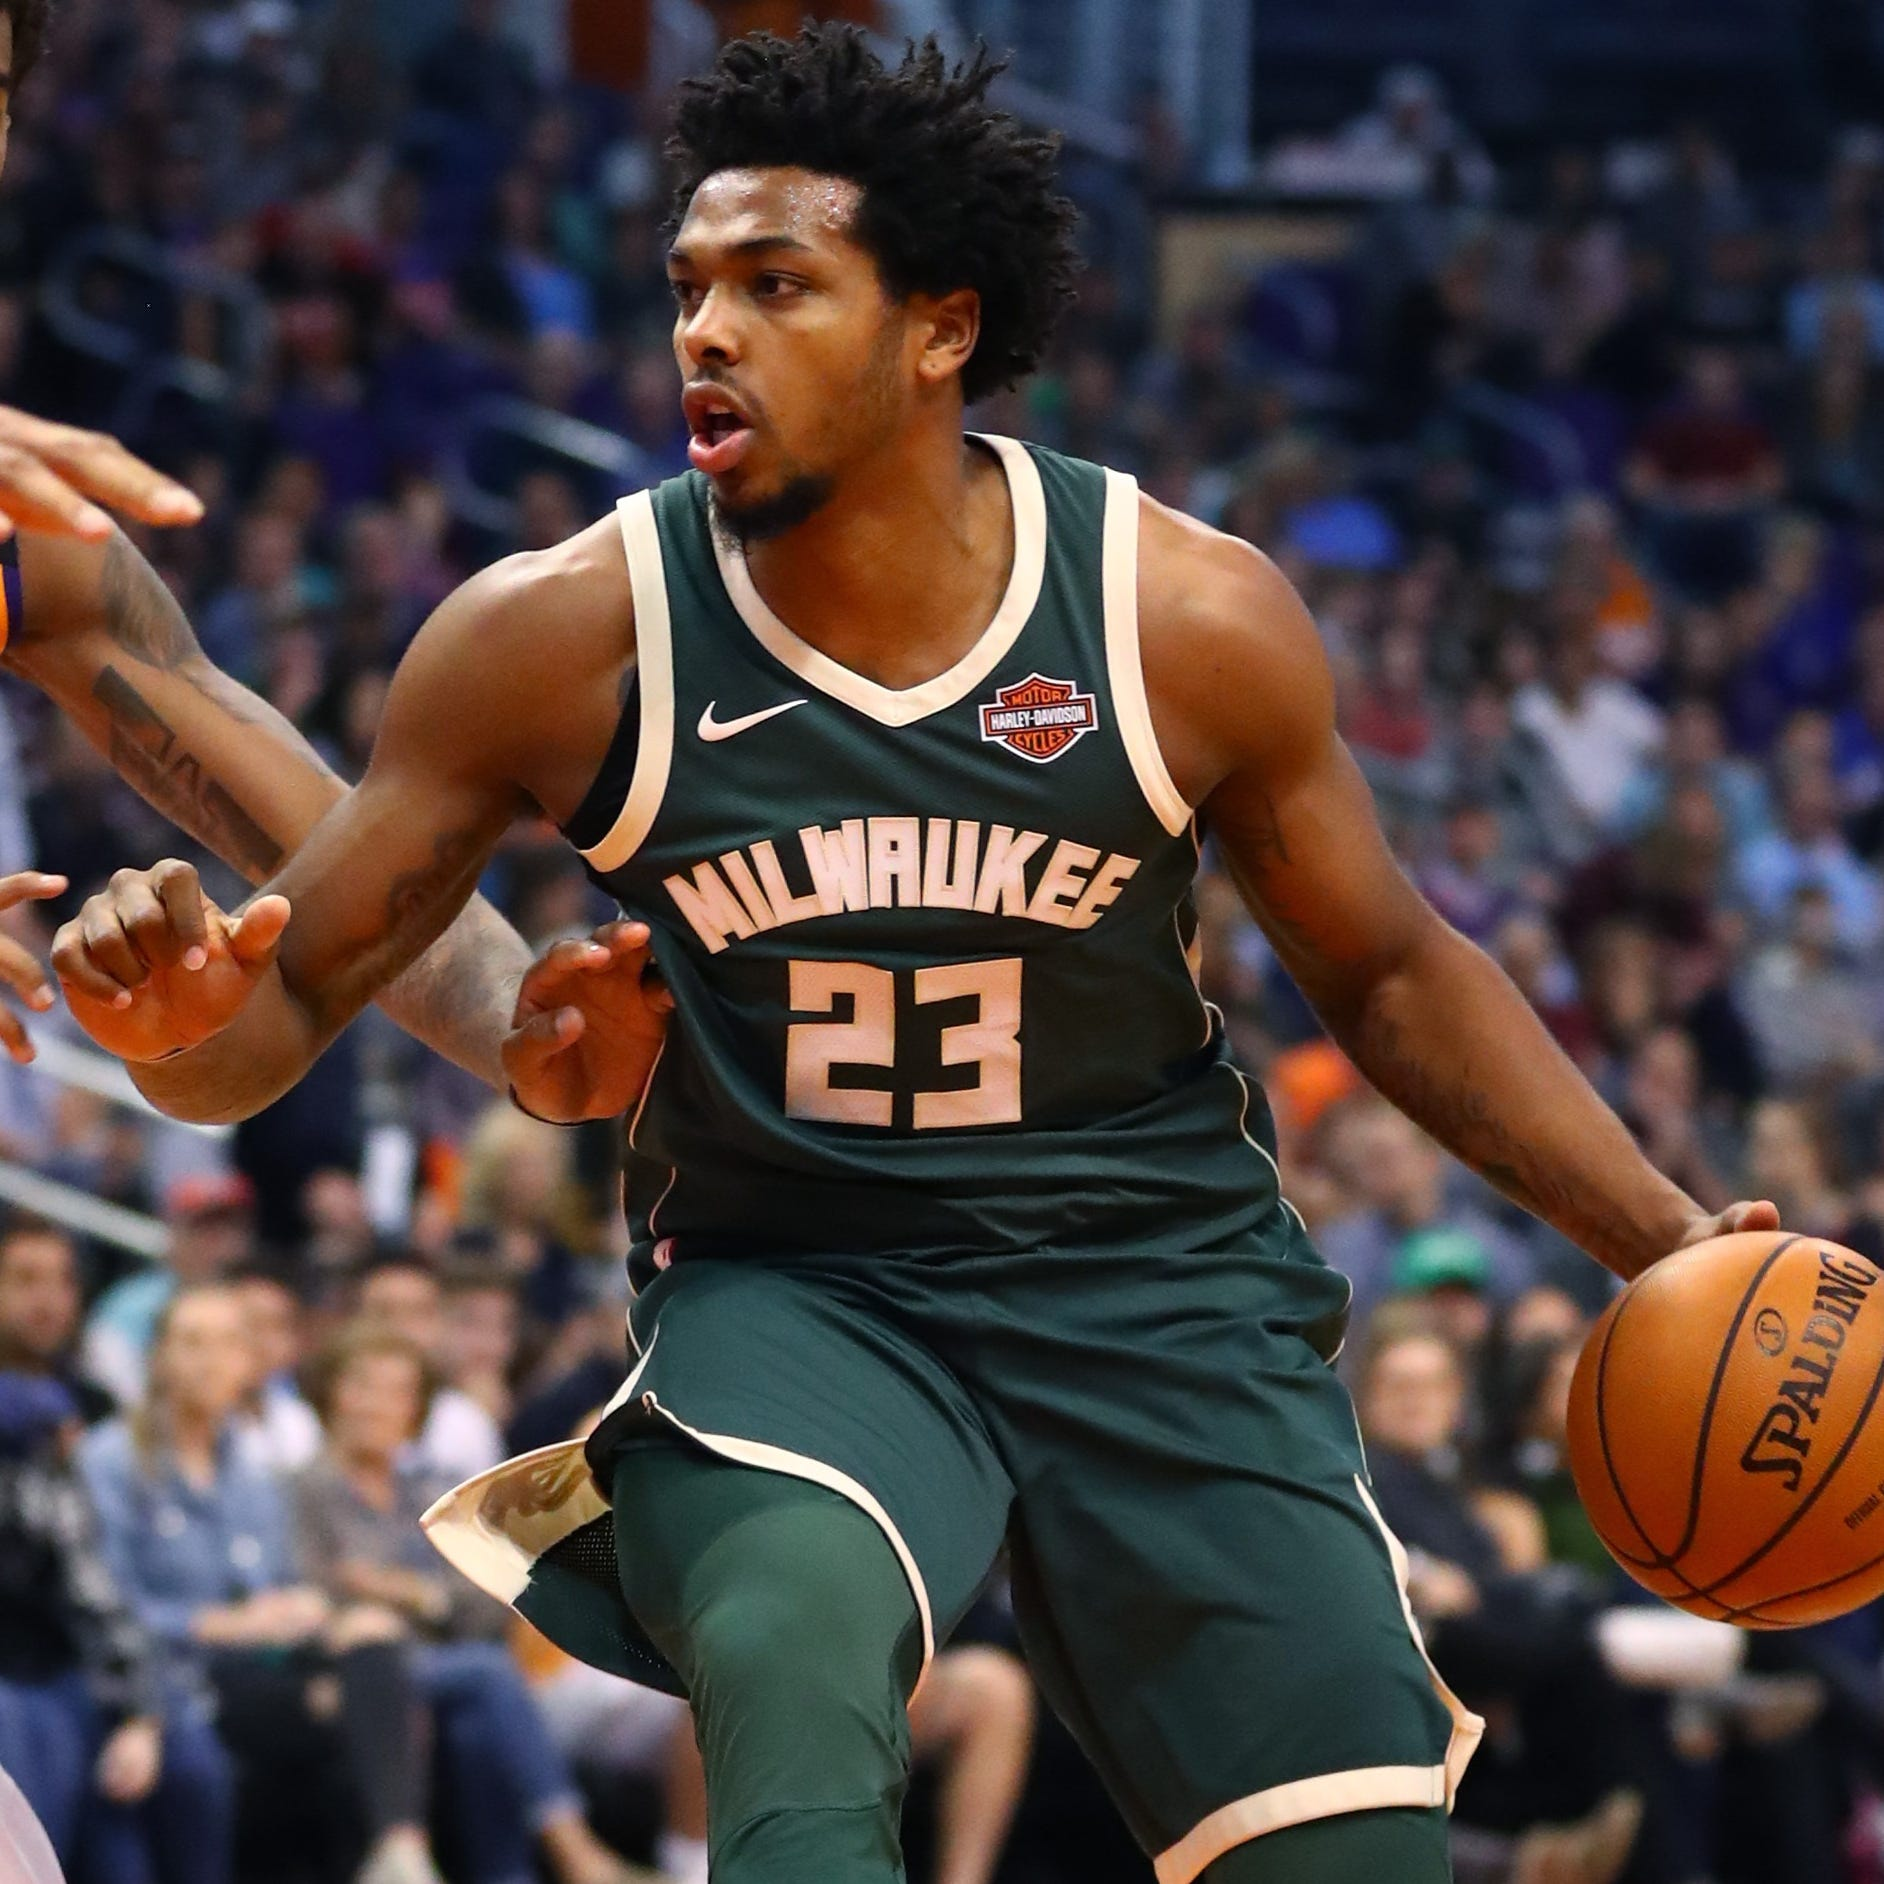 One officer involved in arrest of Milwaukee Bucks player Sterling Brown fired, chief says